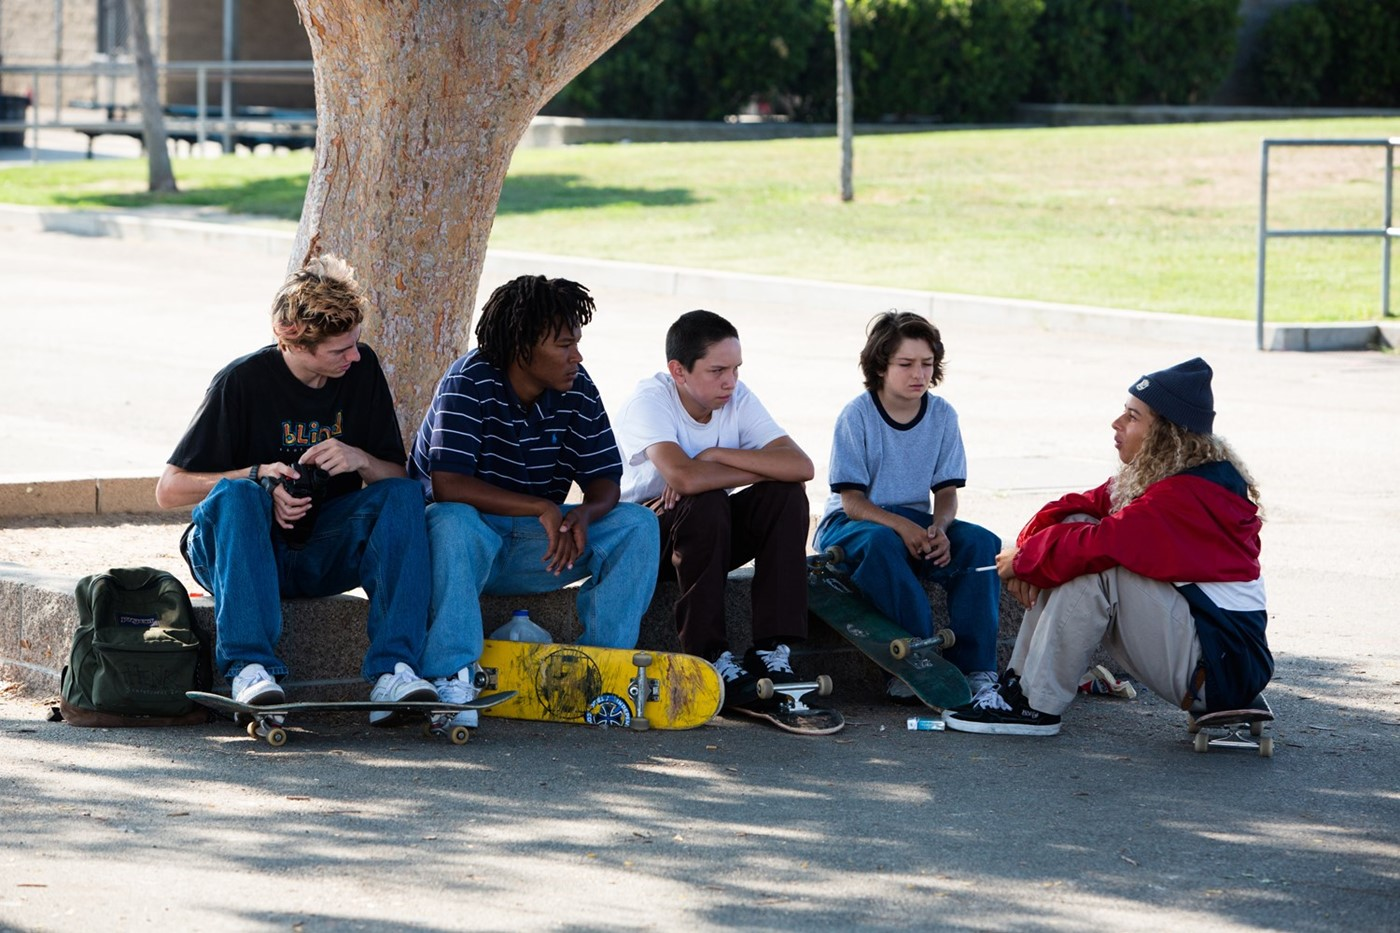 Mid90s, 2019 (Film still)